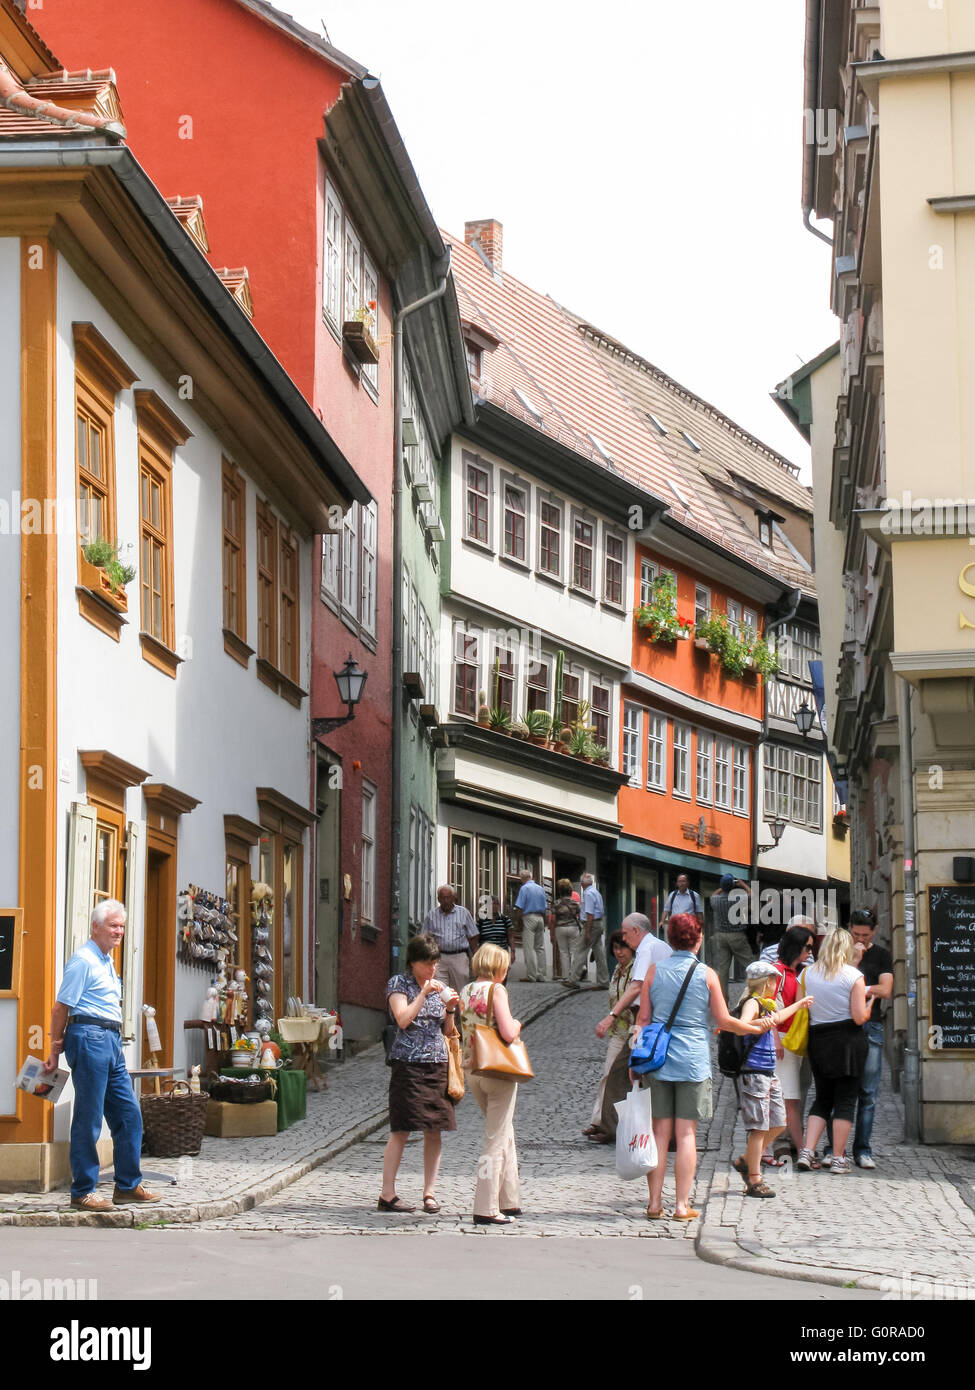 Tourists in shopping street in the city centre of Erfurt, Thuringen, Germany - Stock Image